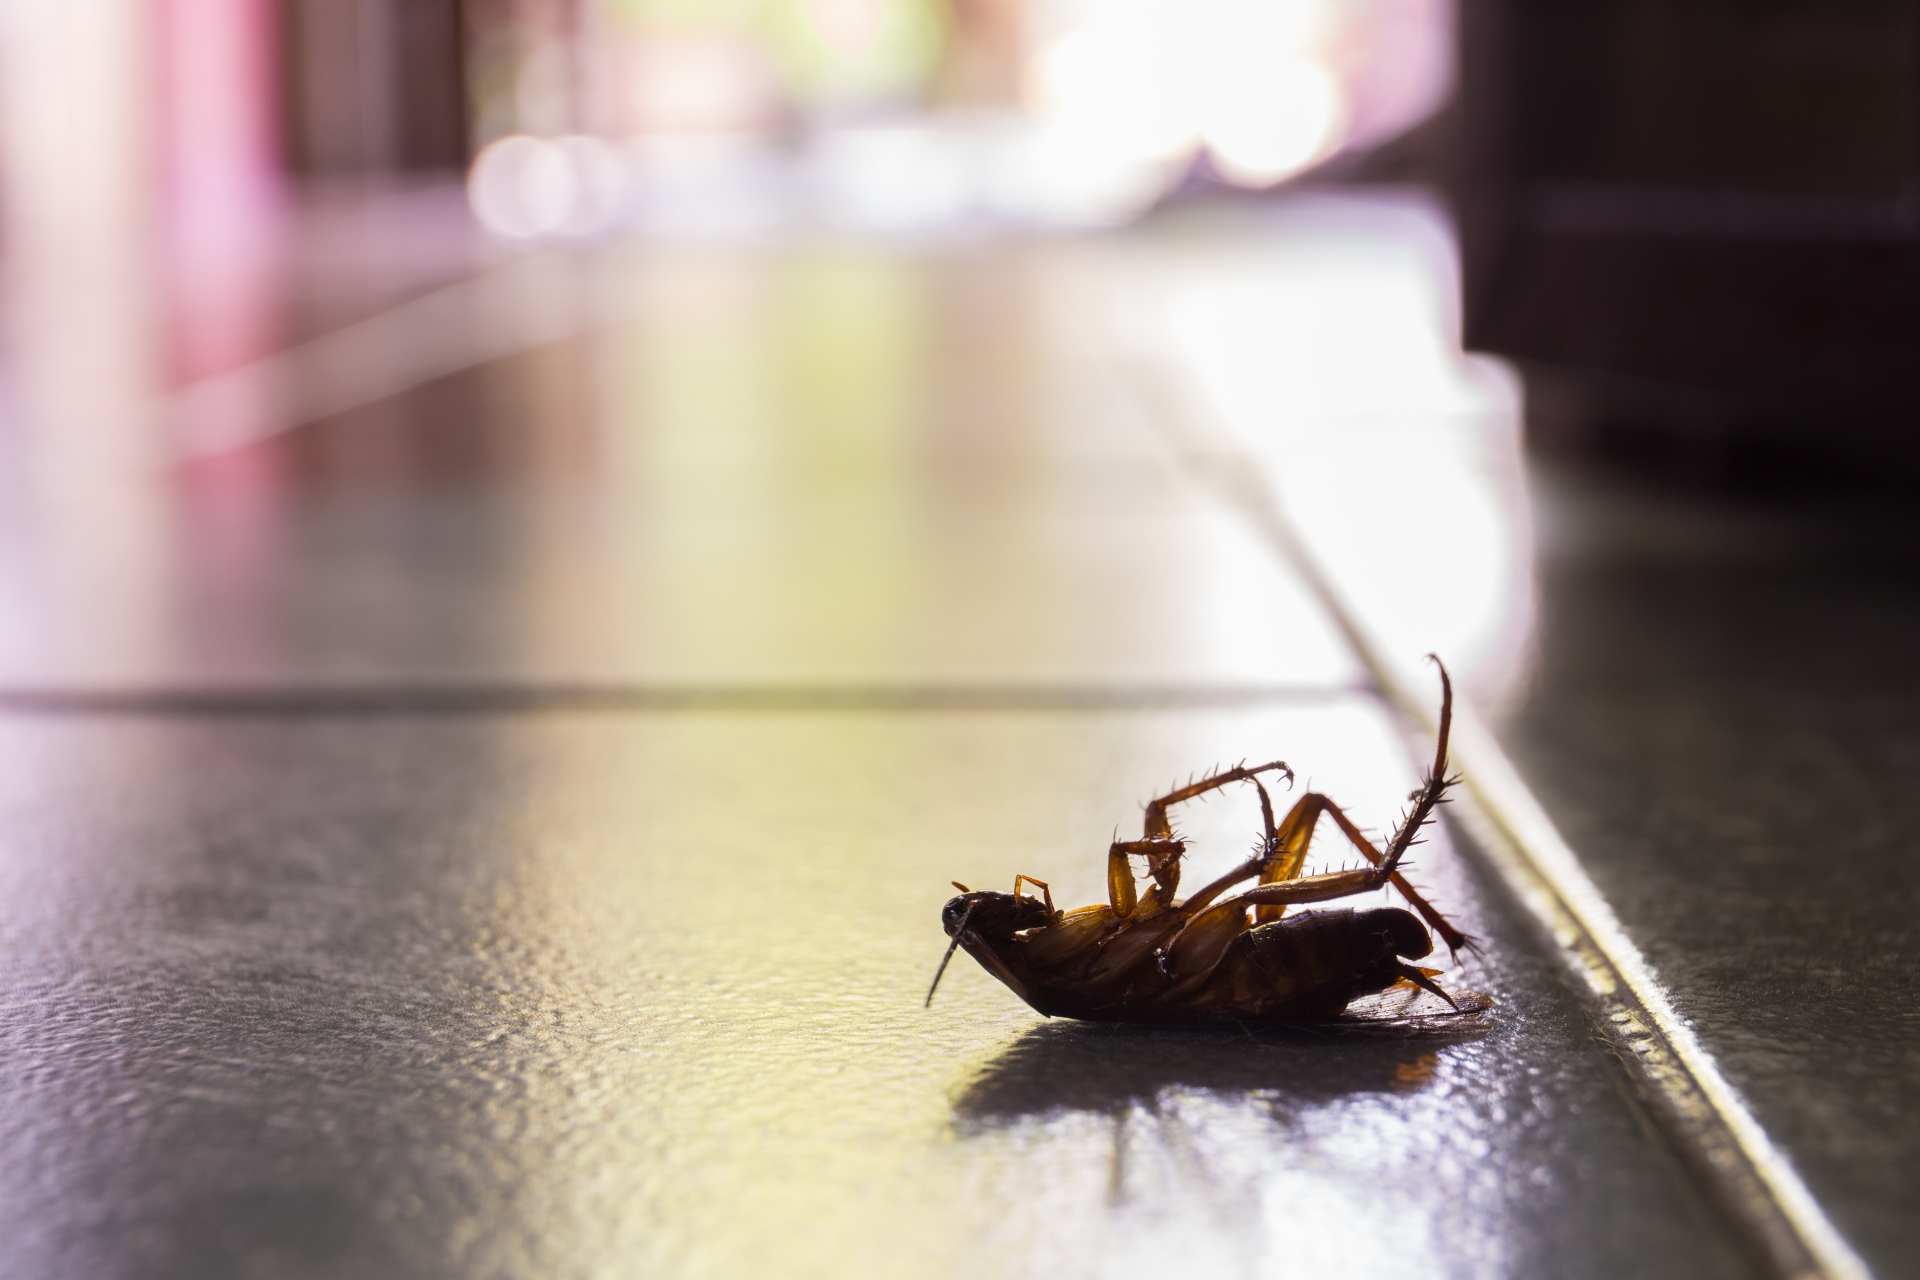 Cockroach Control, Pest Control in Isleworth, TW7. Call Now 020 8166 9746